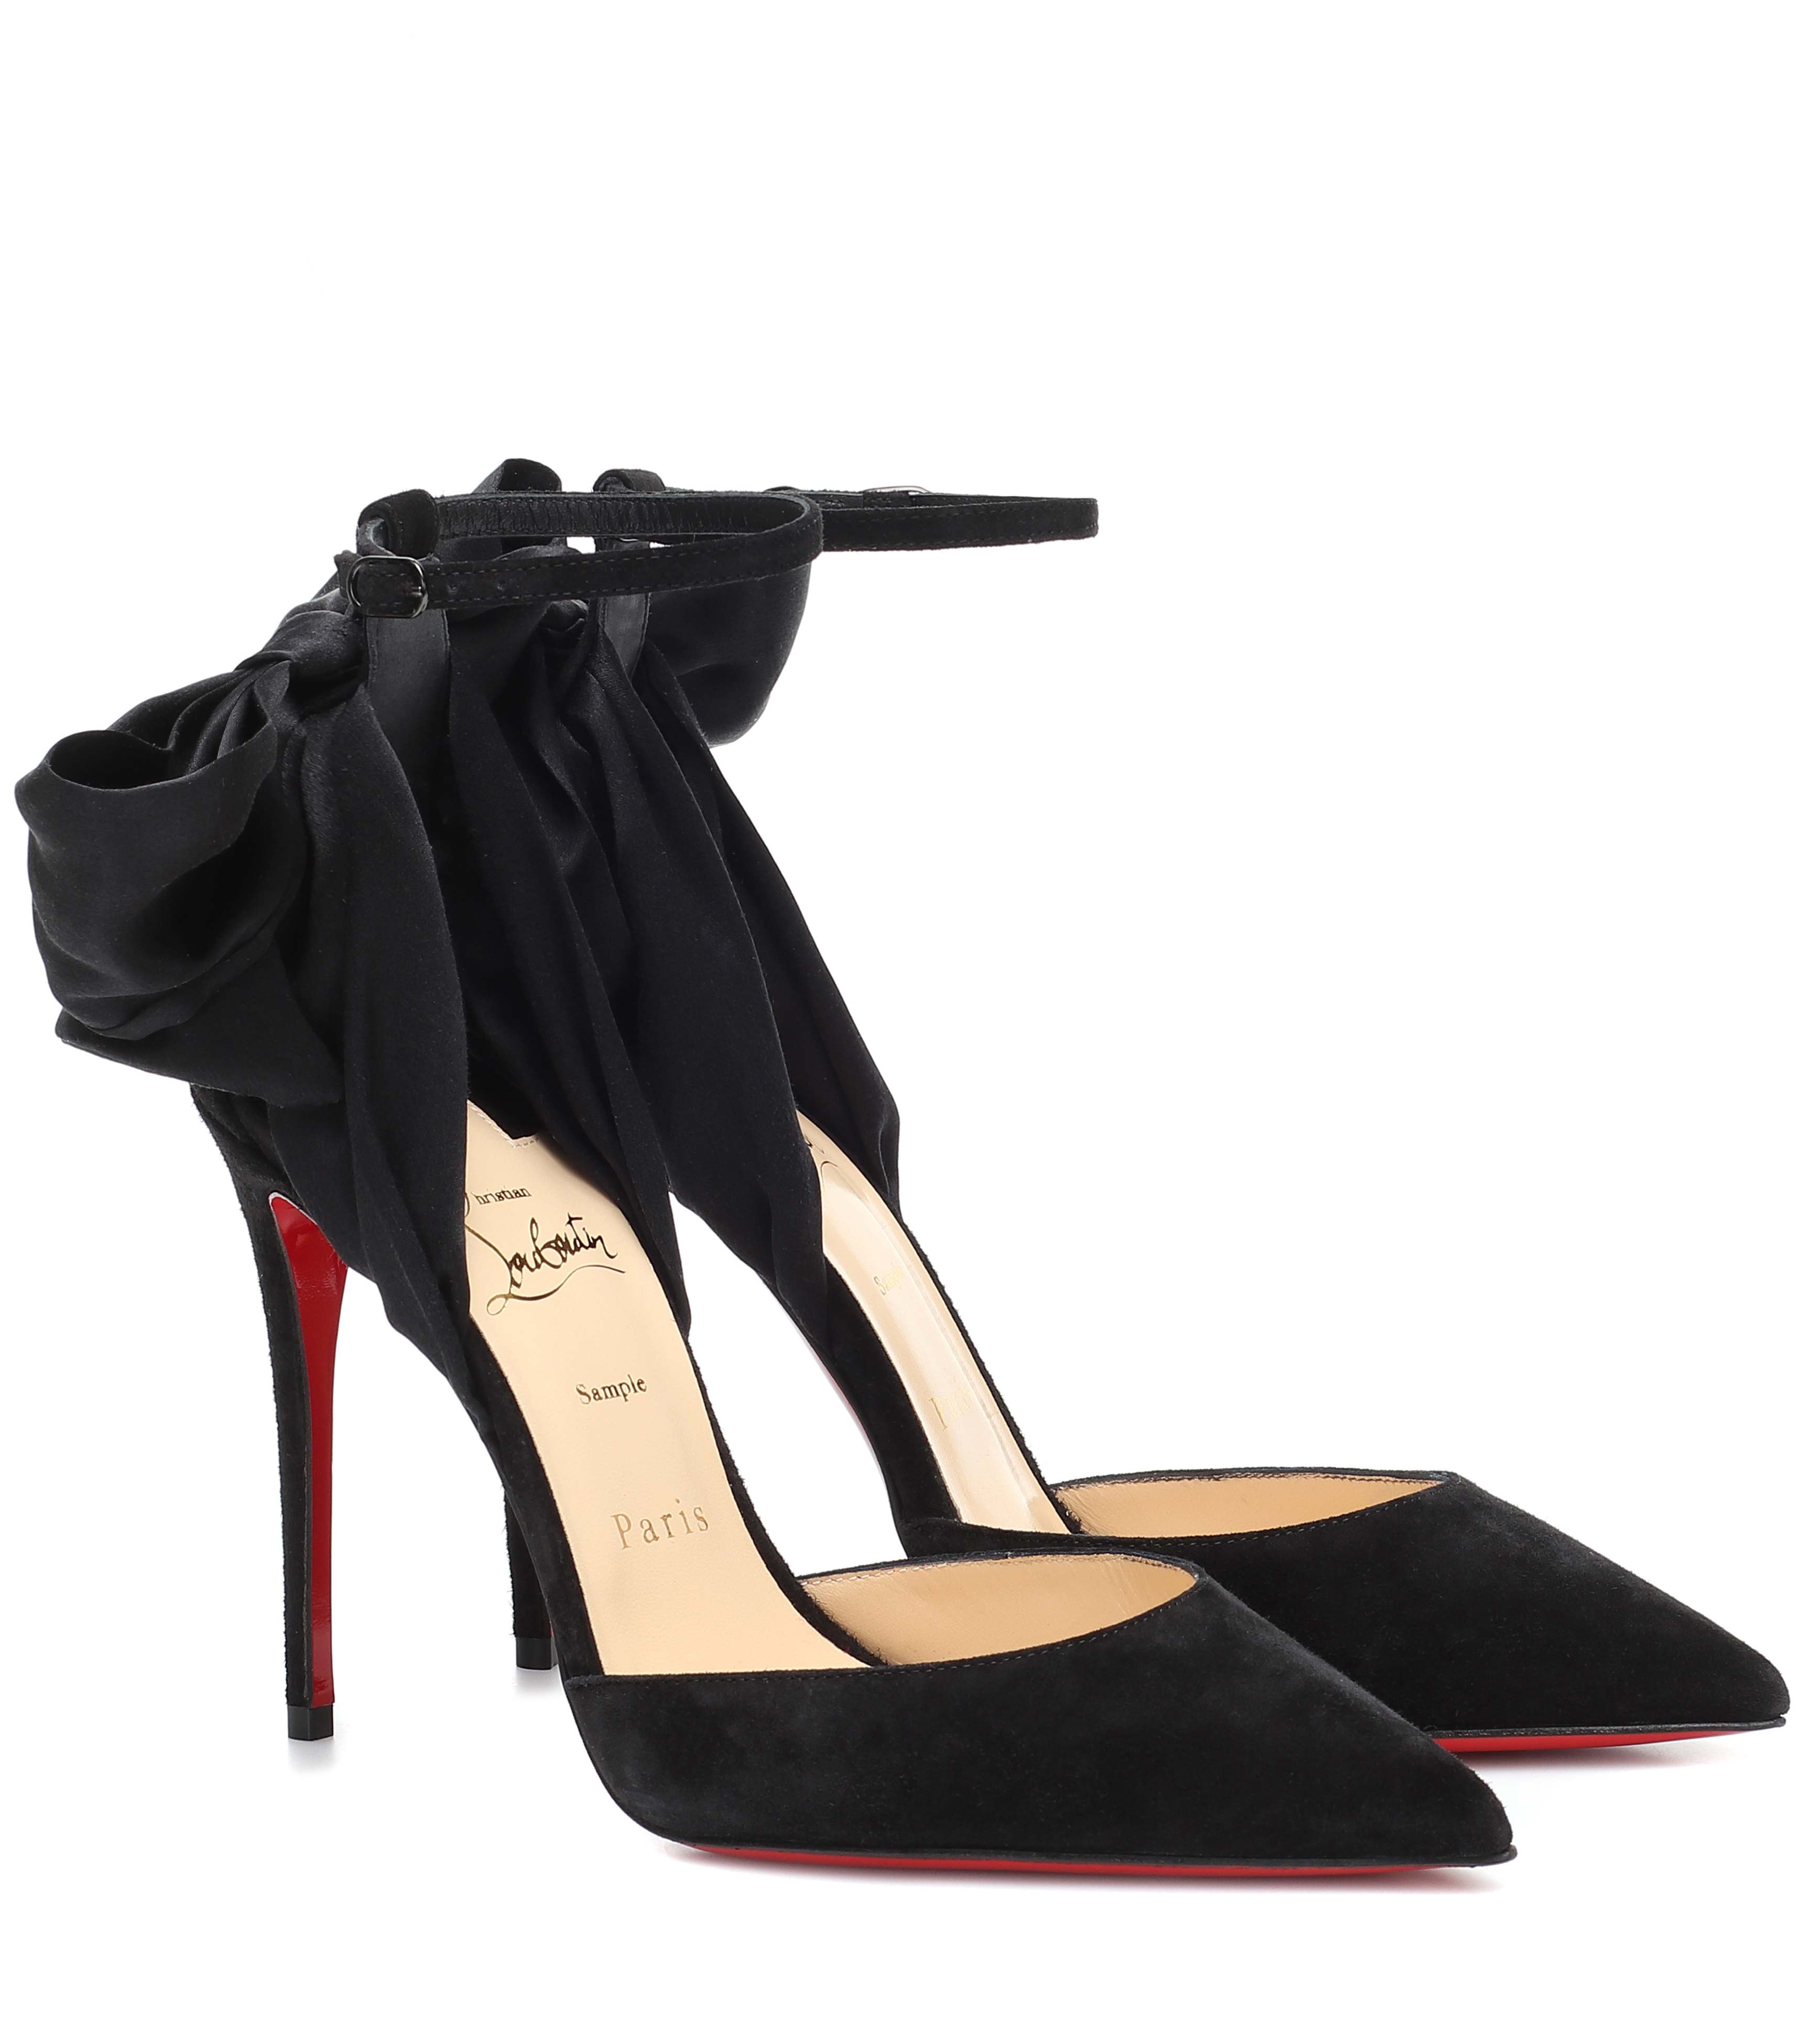 Mytheresa's exclusive capsule collection with Christian Louboutin is now available (фото 6)